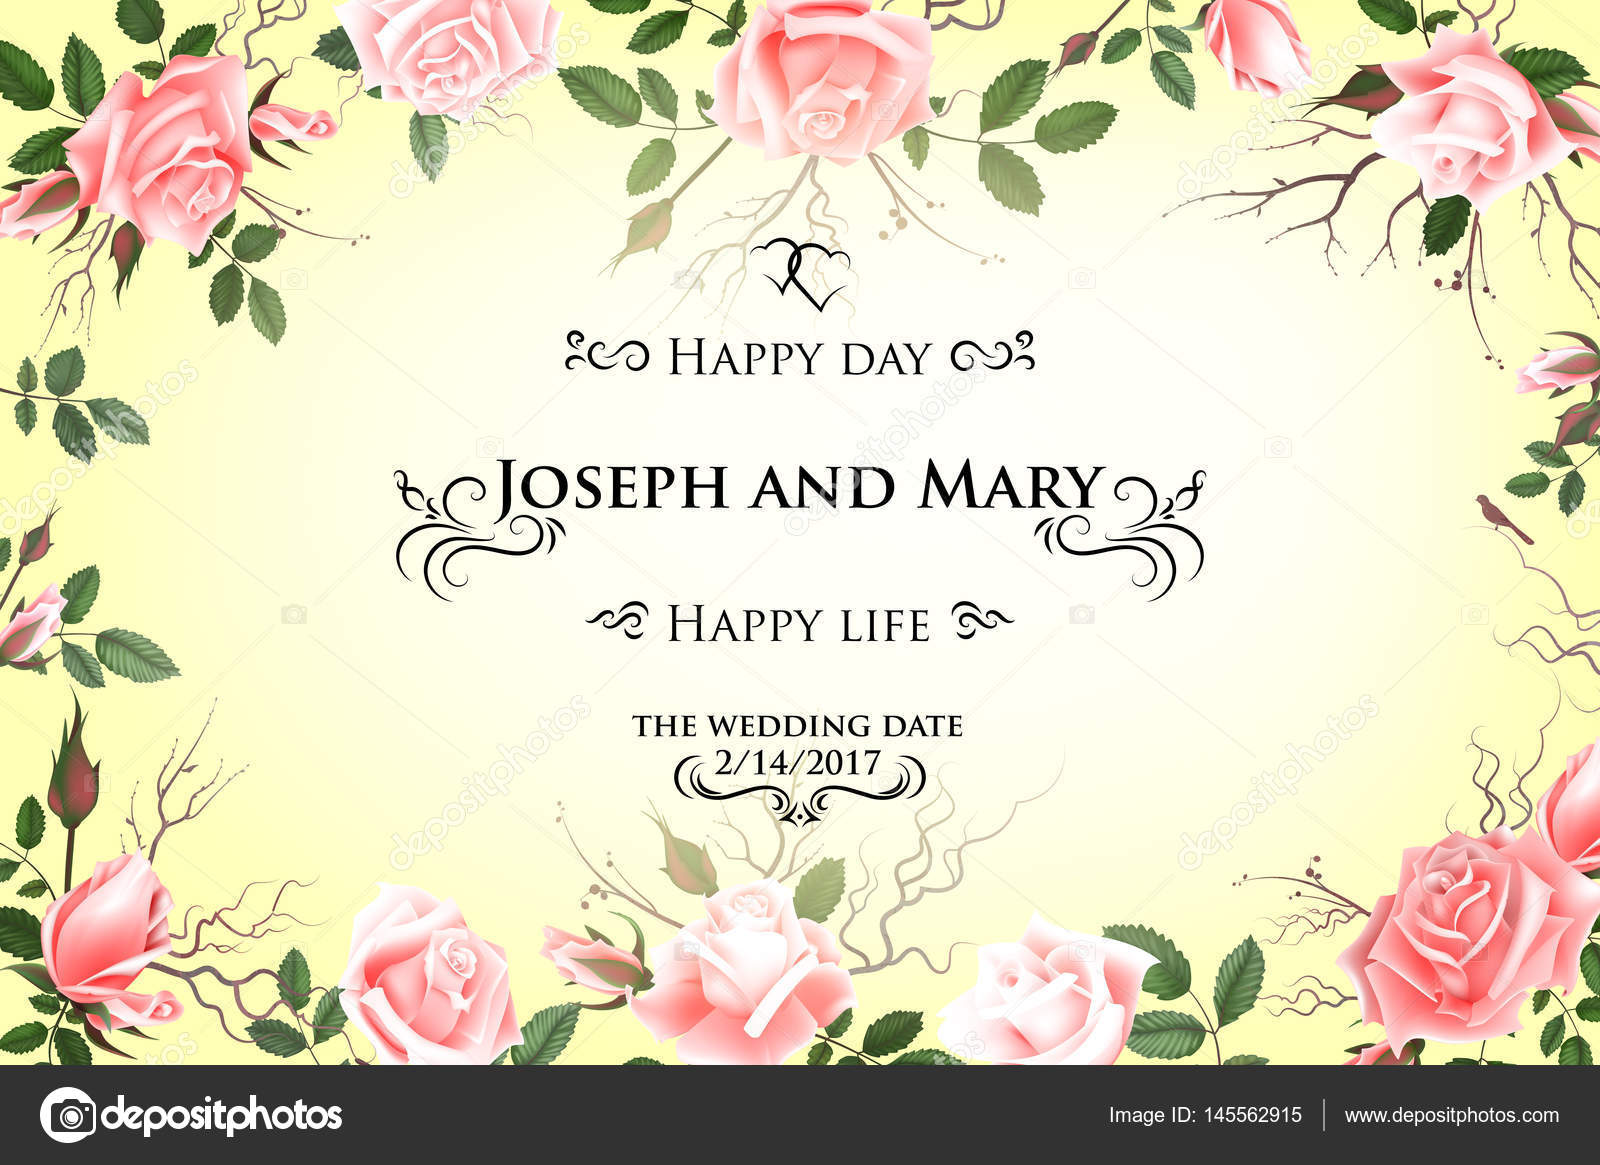 Postcard with delicate flowers roses wedding invitation thank you wedding invitation thank you save the date cards flyer banner template spring and summer background happy birthday greeting card expocarfo Images